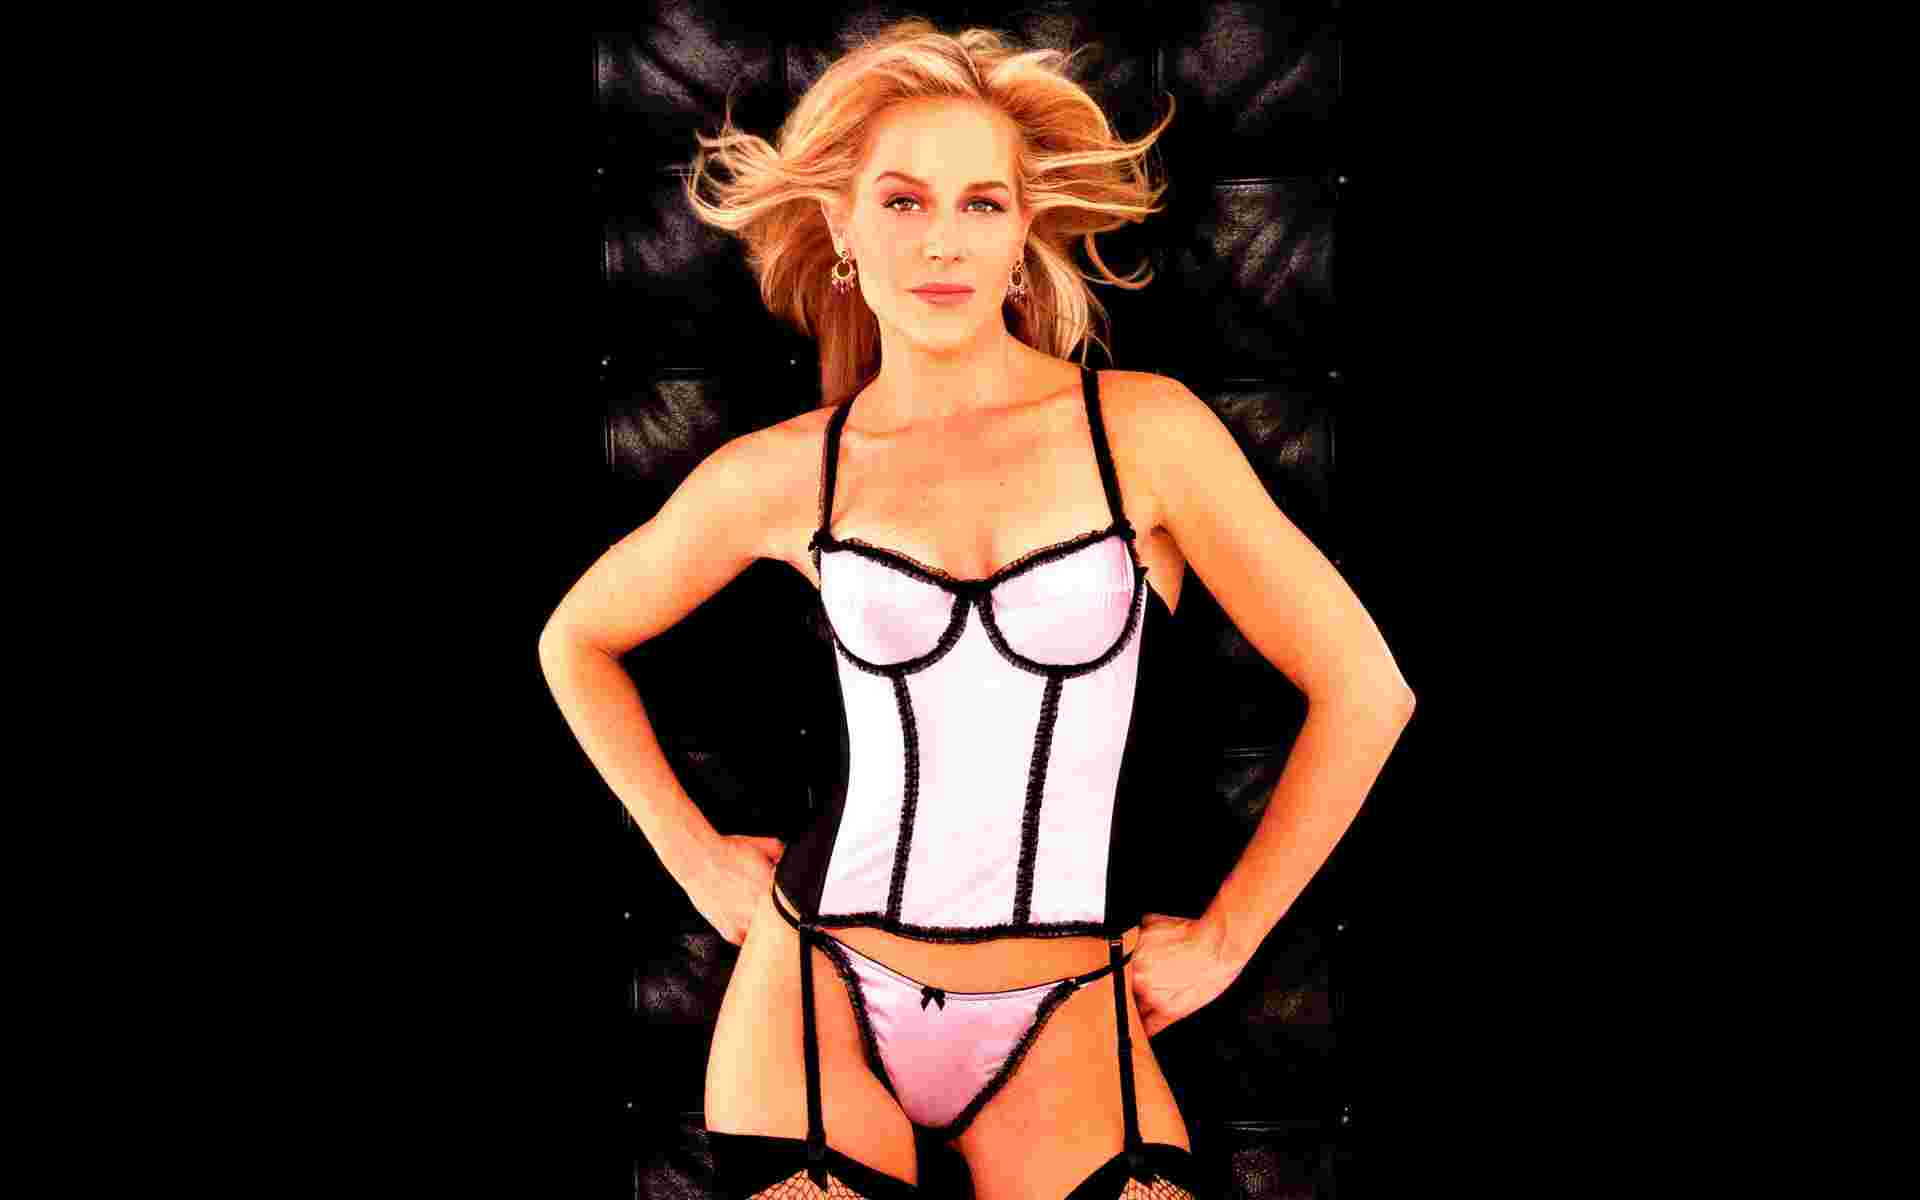 julie benz lingerie